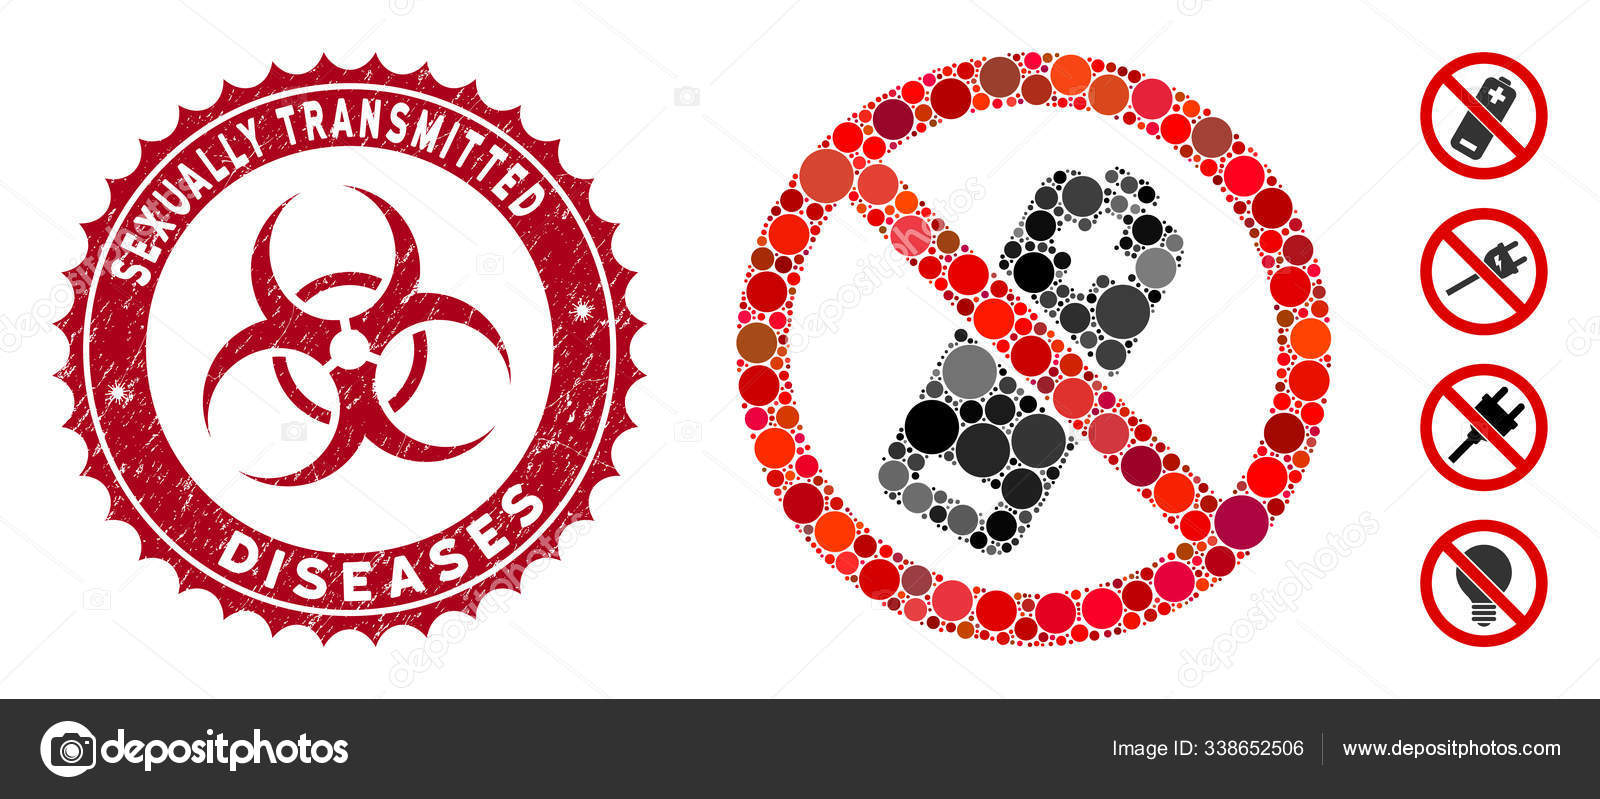 Vector Stock - Std (sexually transmitted diseases) acronym and stethoscope  icon. Clipart Illustration gg105512560 - GoGraph